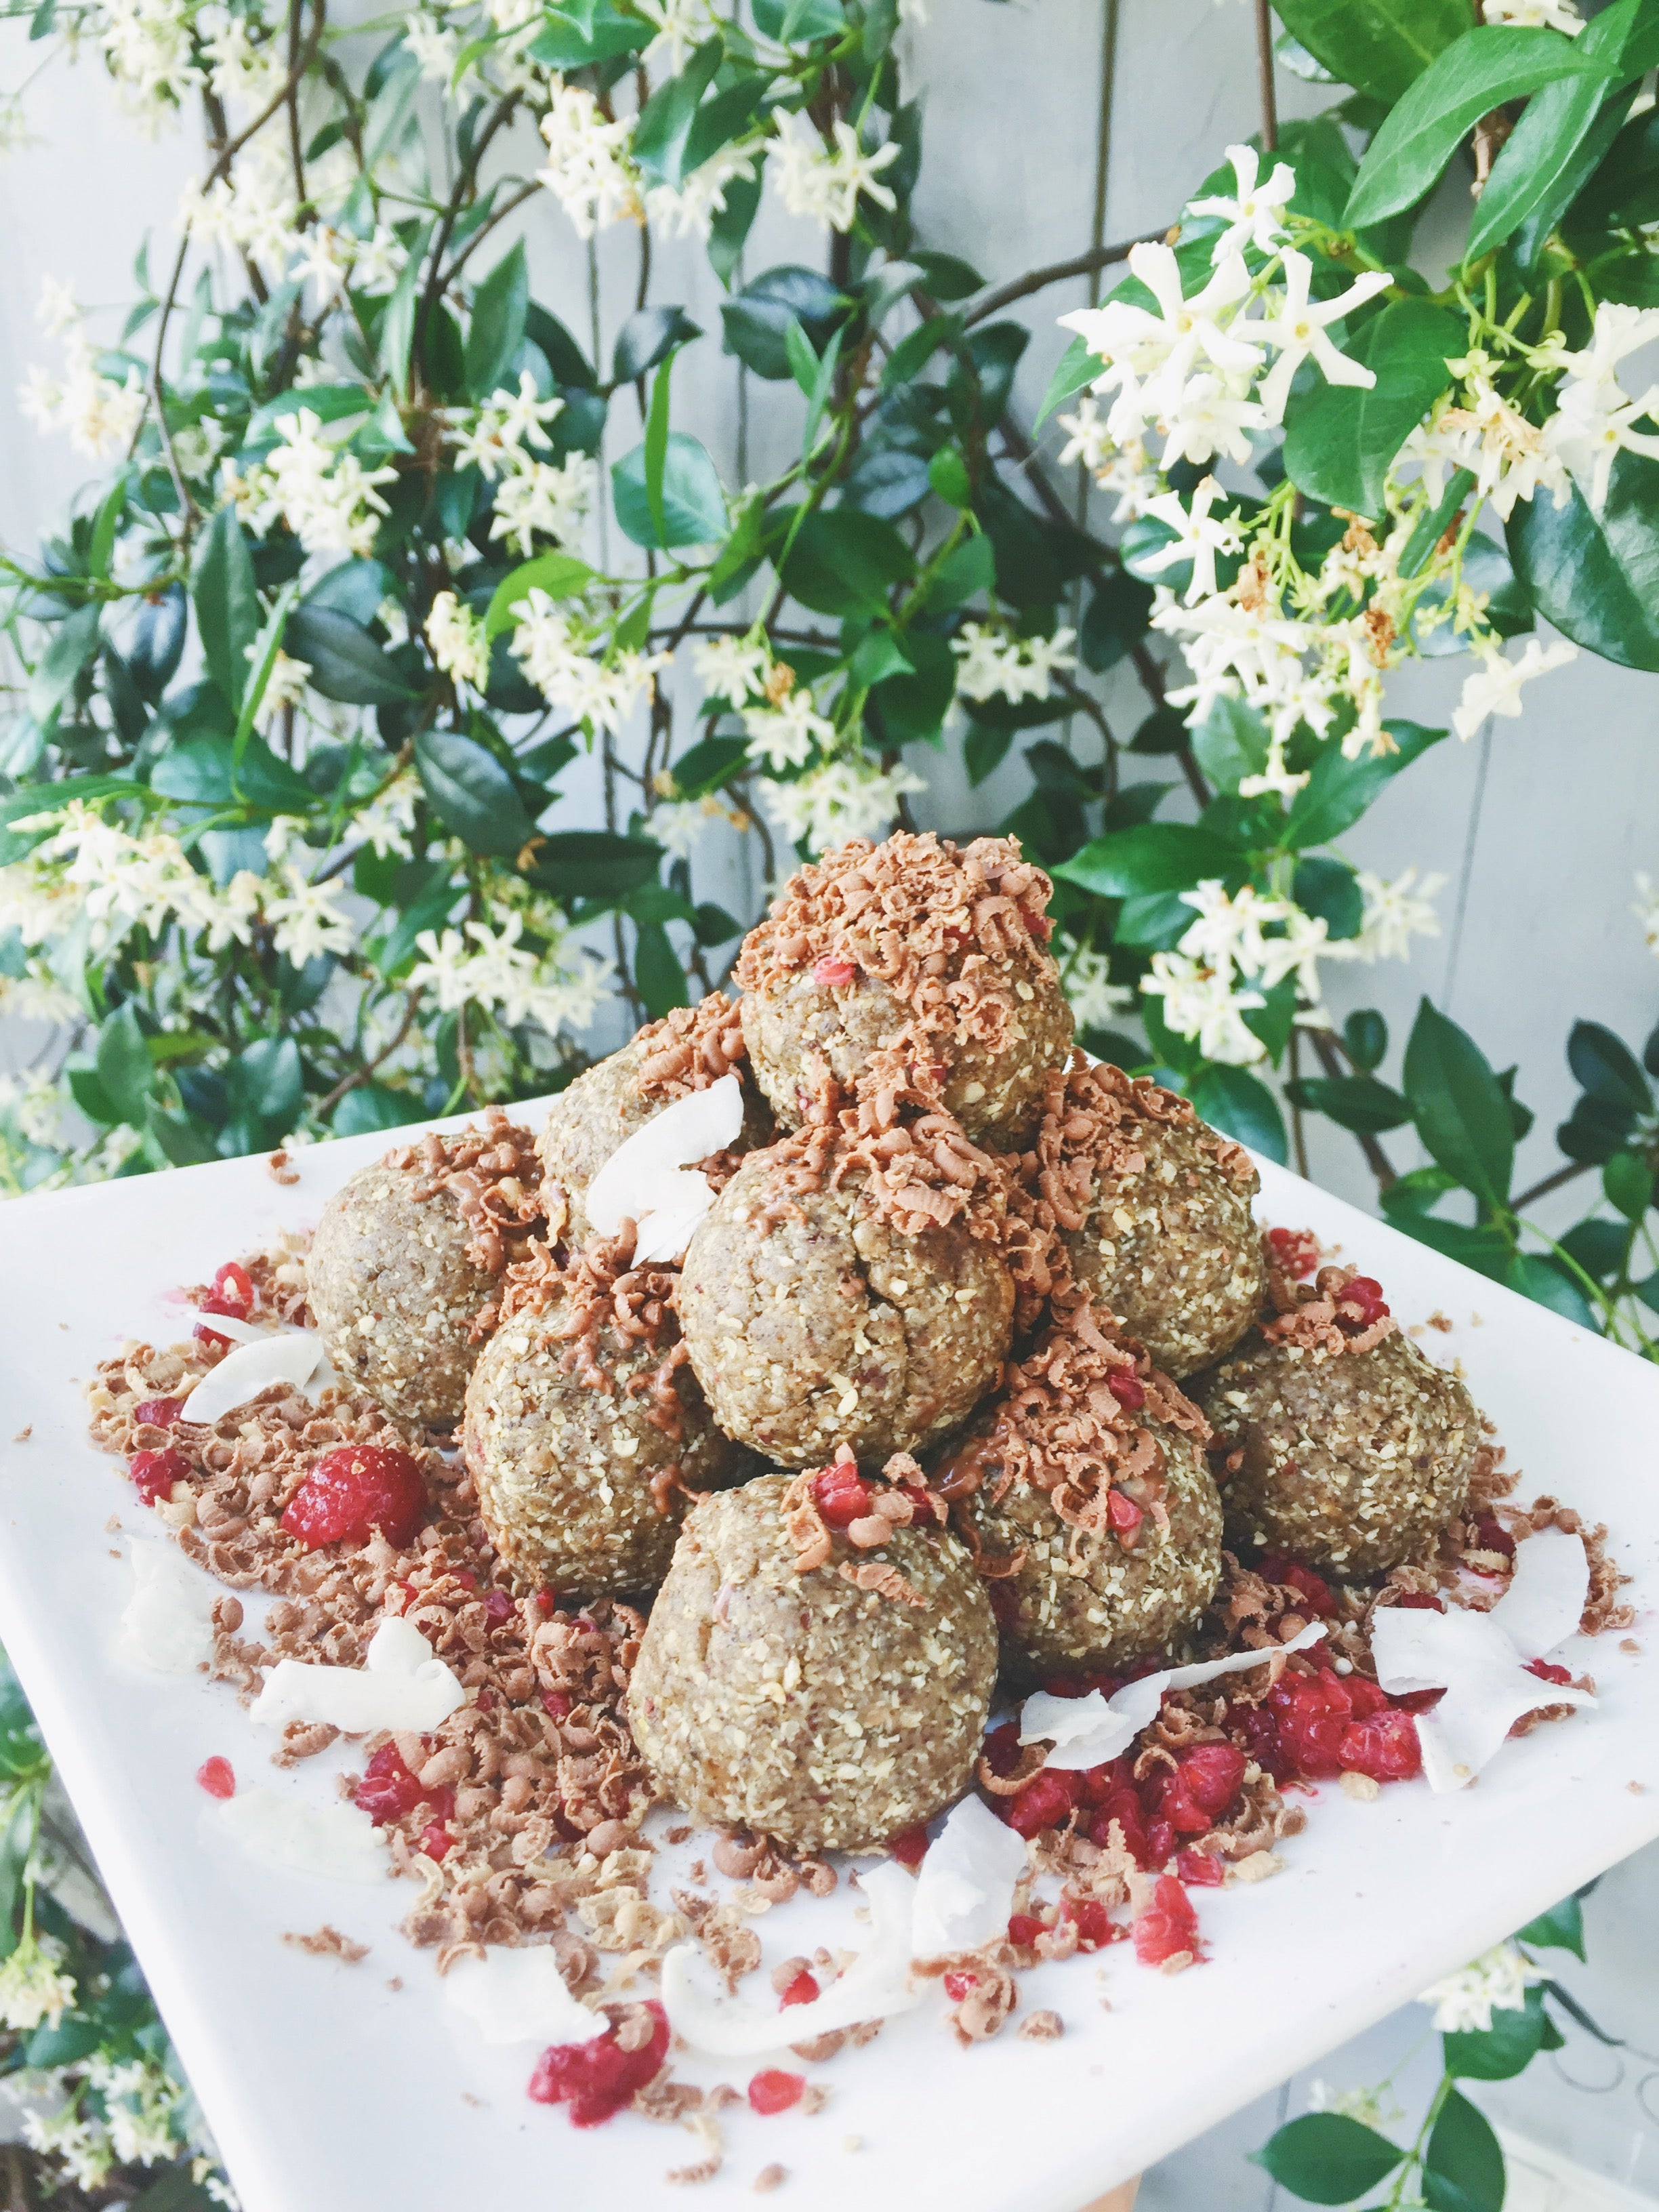 Triple Choc Bliss Ball Recipe